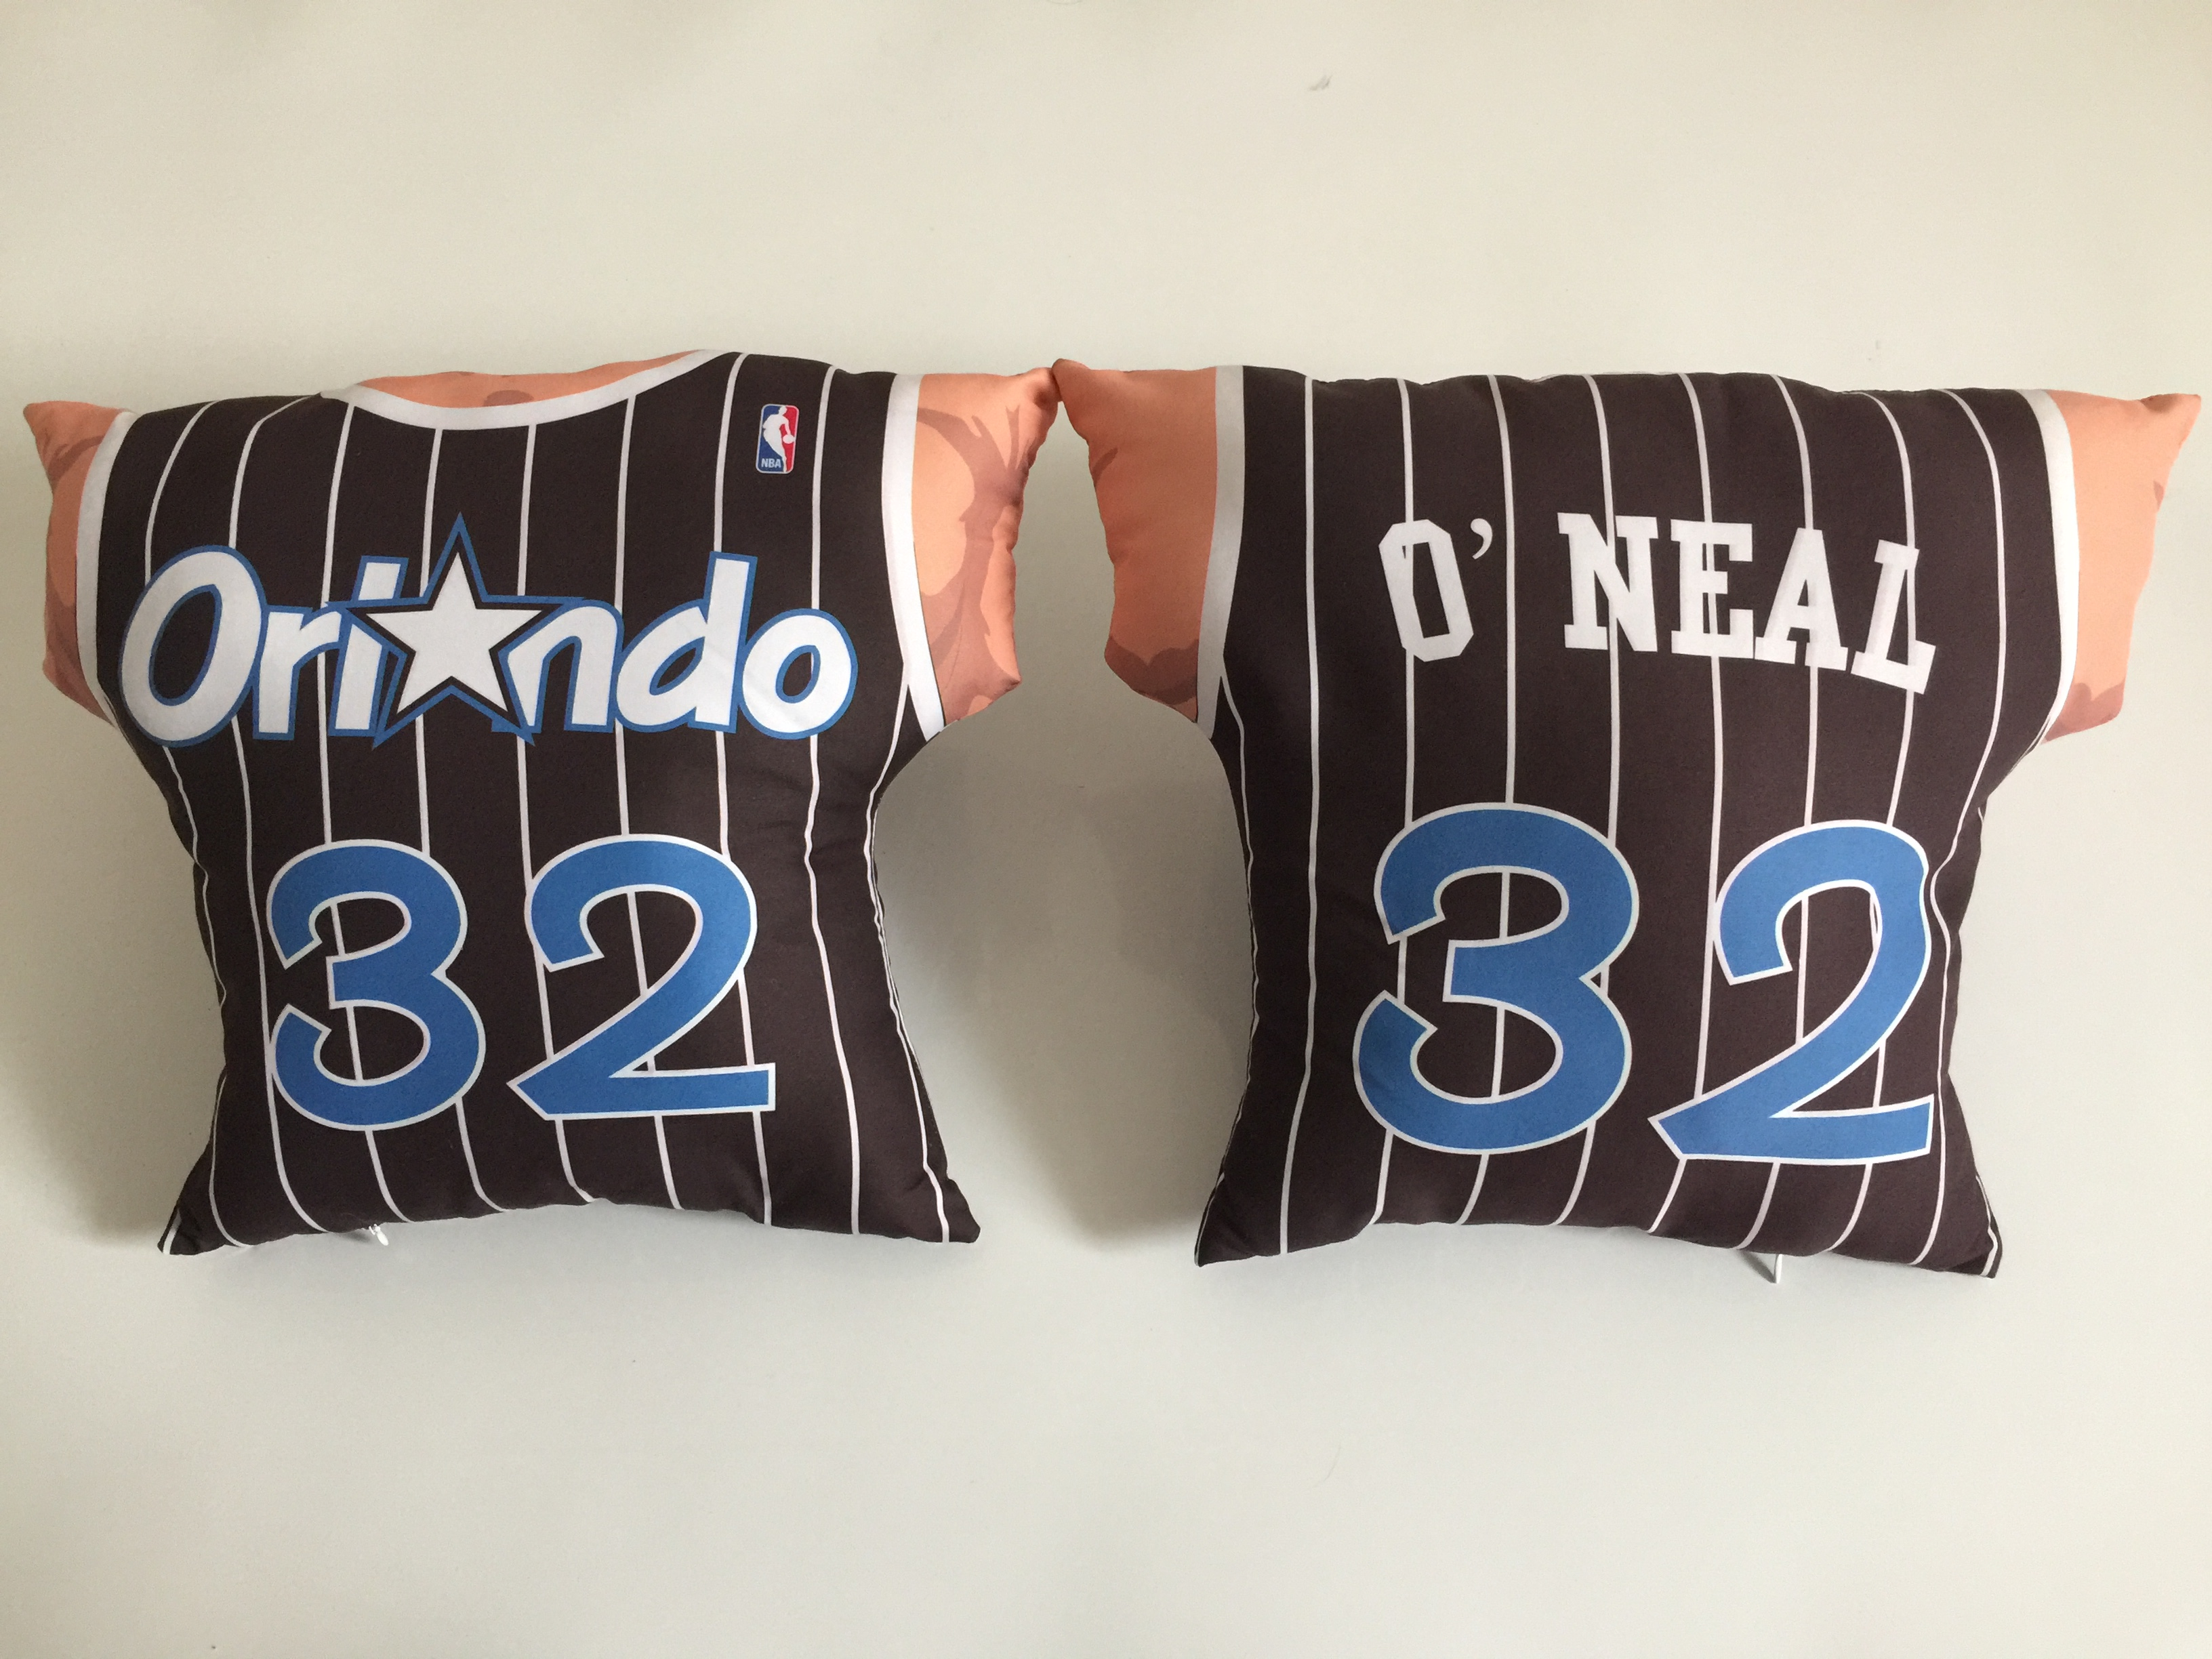 Orlando Magic 32 Shaquille O'Neal Black NBA Pillow